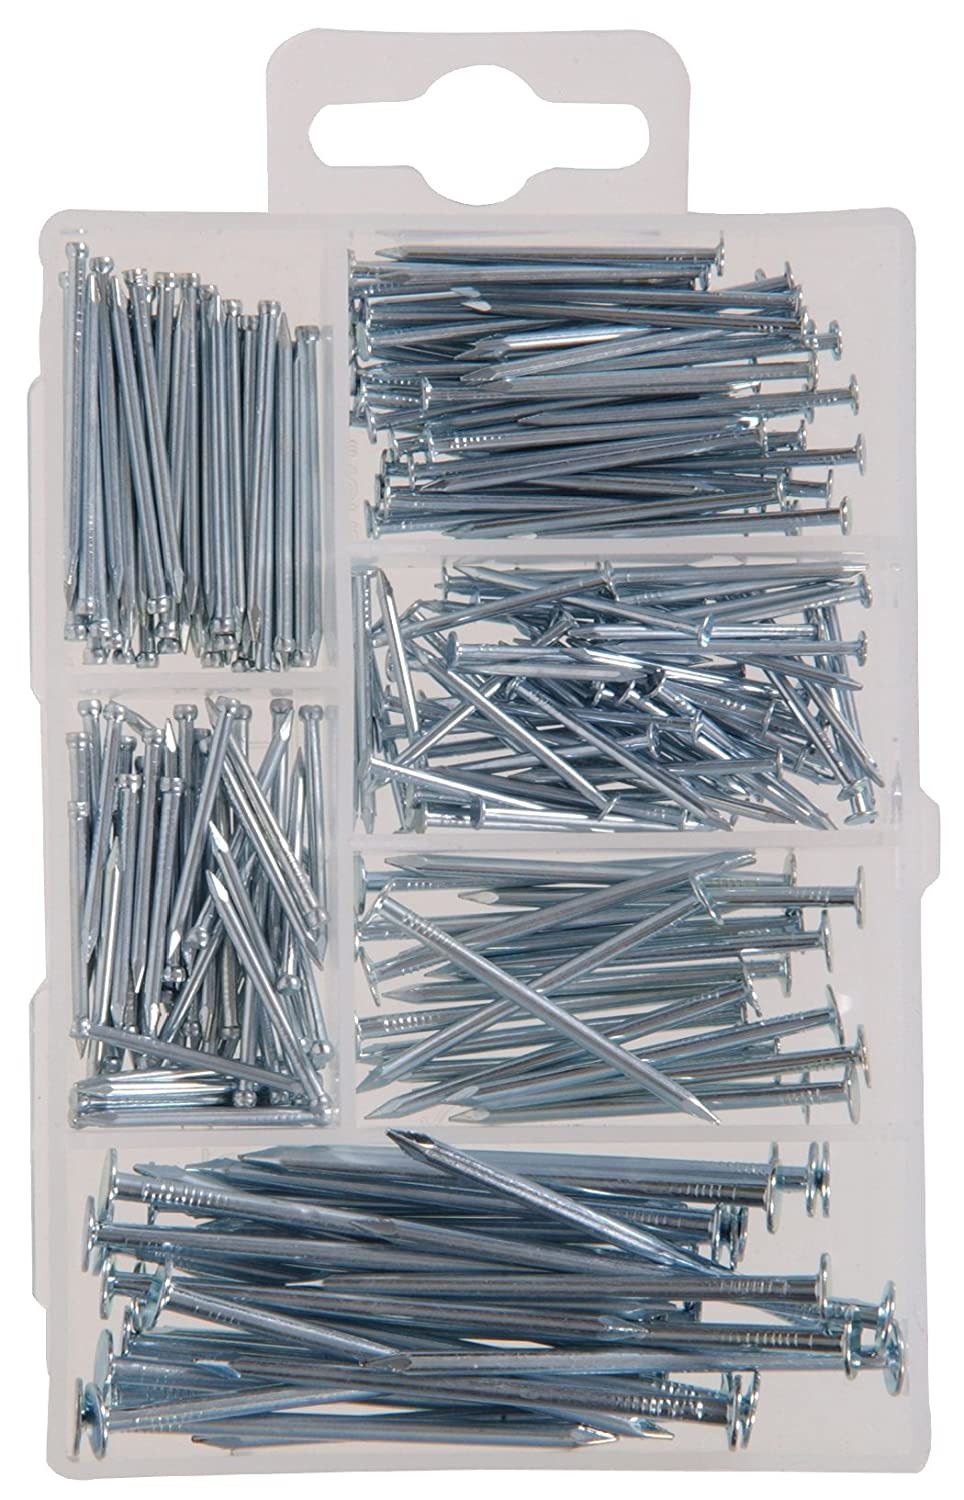 The Hillman Group 591520 Small Wire Nail and Brad Assortment 260 Pack